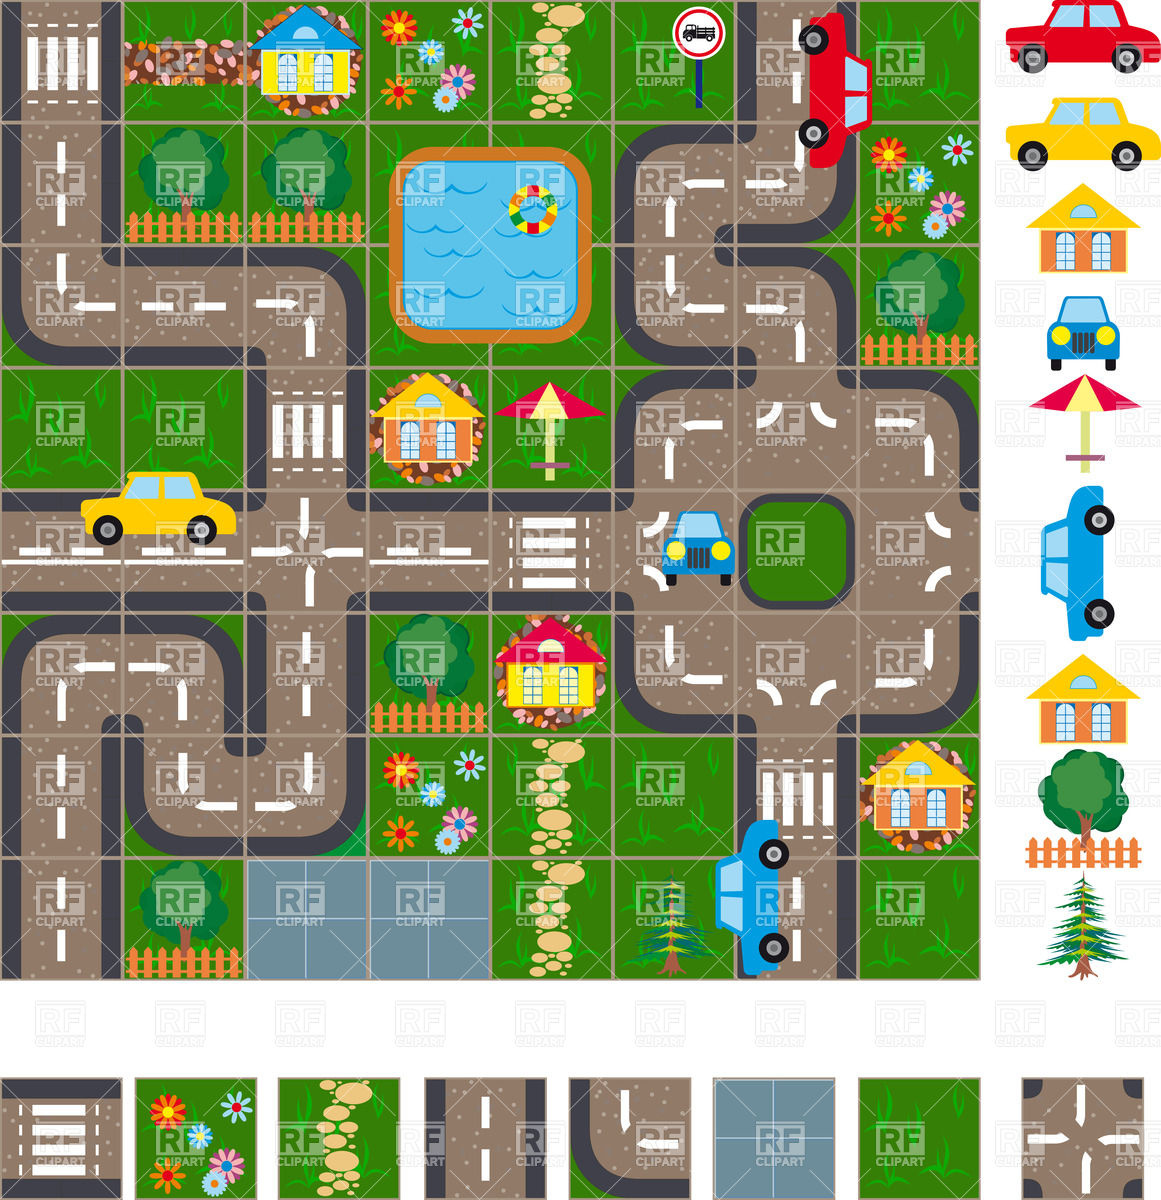 City road map clipart picture black and white City Map Clipart - Clipart Kid picture black and white